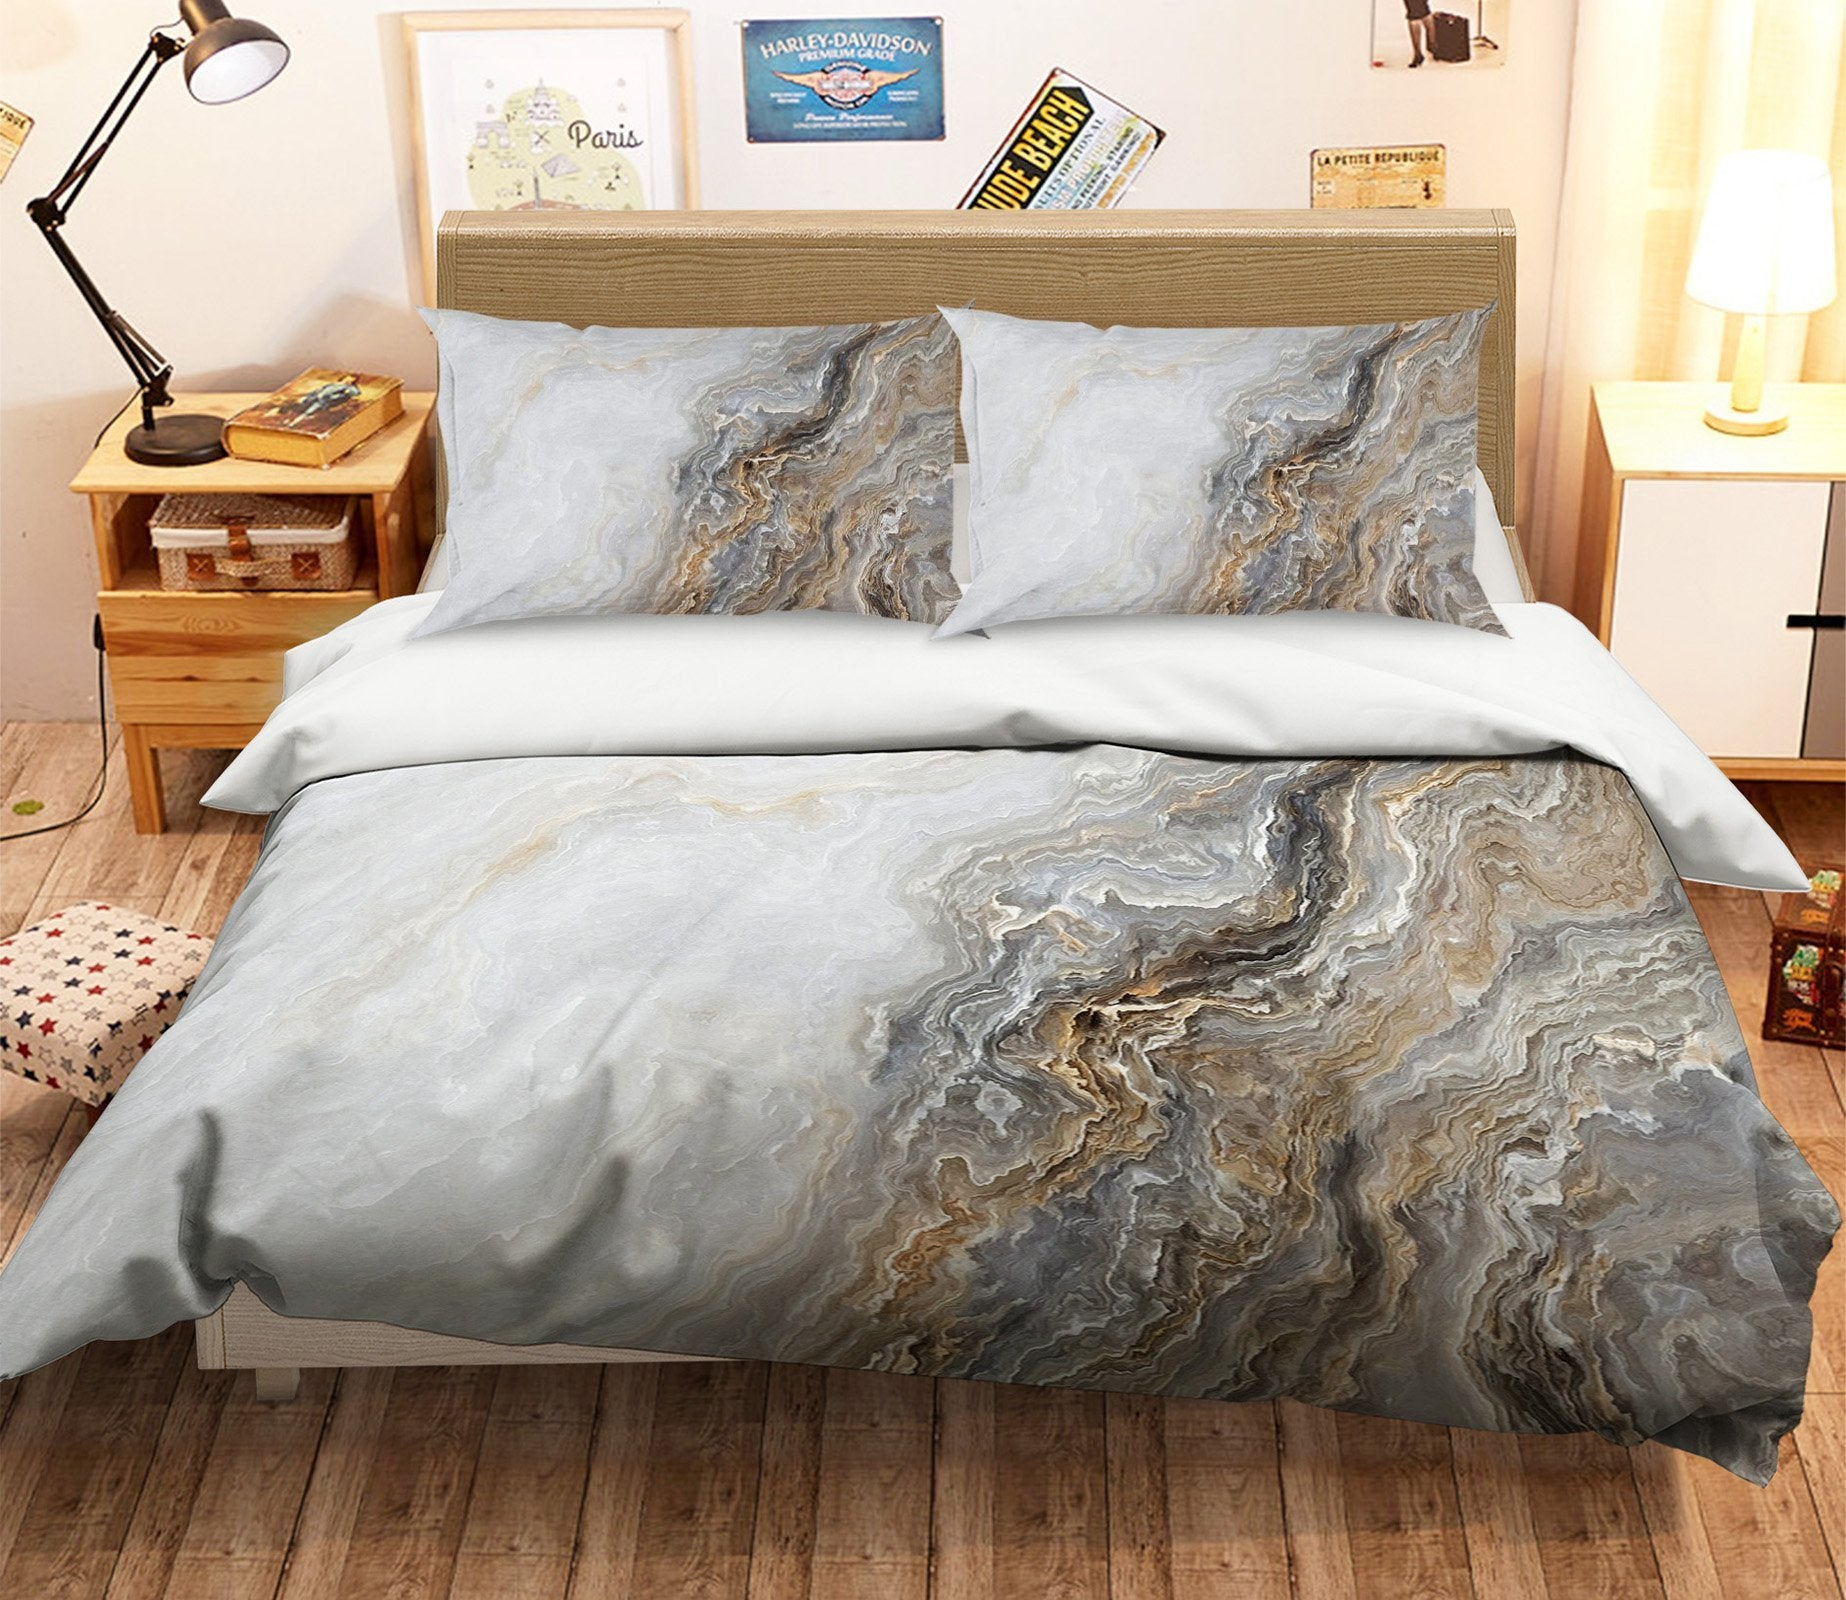 3D Oil Painting Wave Pattern 063 Bed Pillowcases Quilt Wallpaper AJ Wallpaper